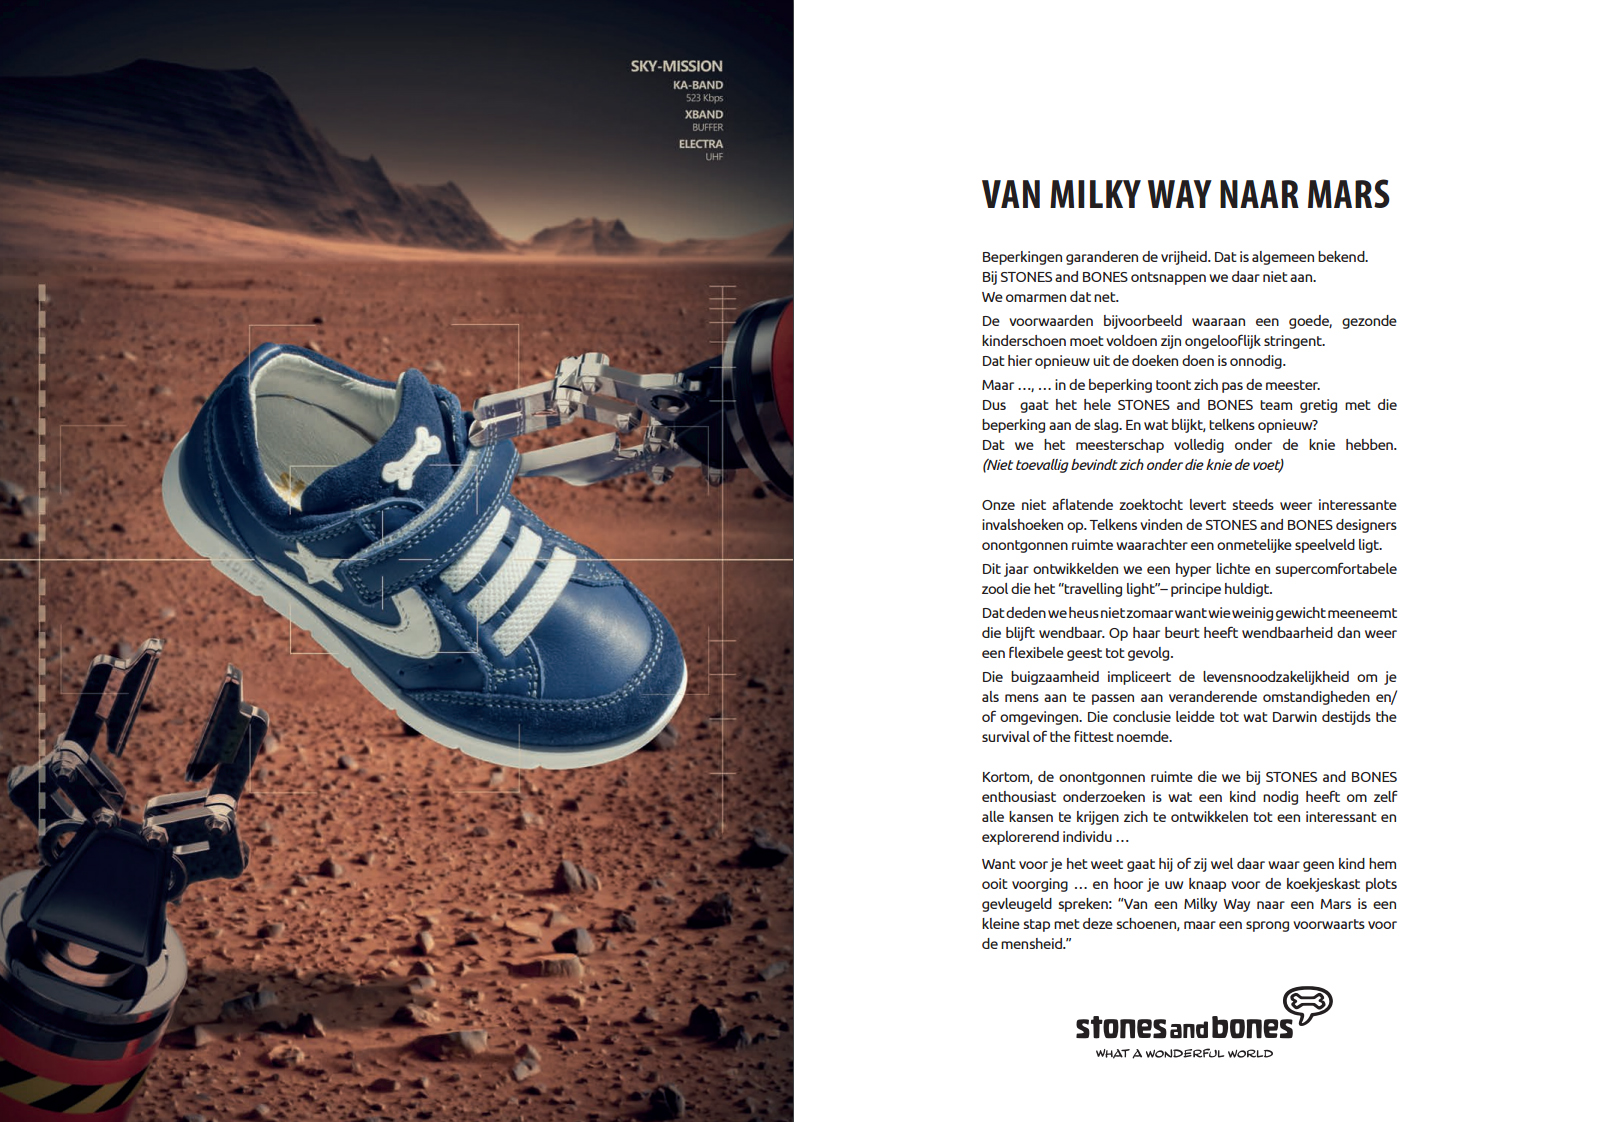 Van Milky Way tot Mars ...